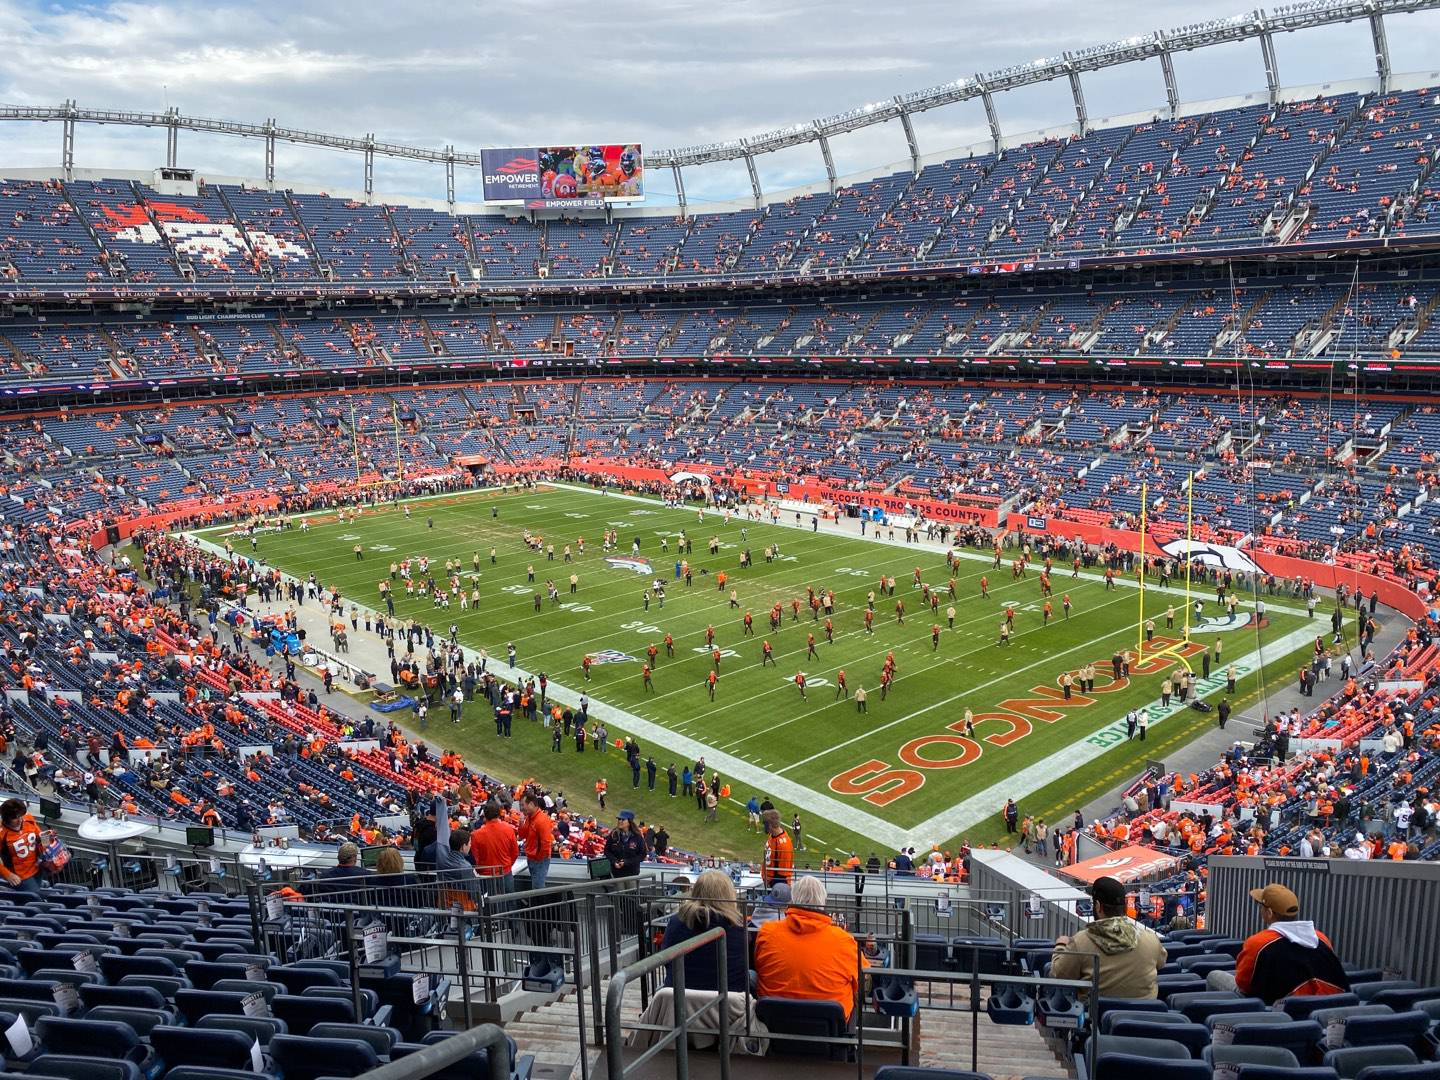 Empower Field at Mile High Stadium Section 300 Row 16 Seat 8